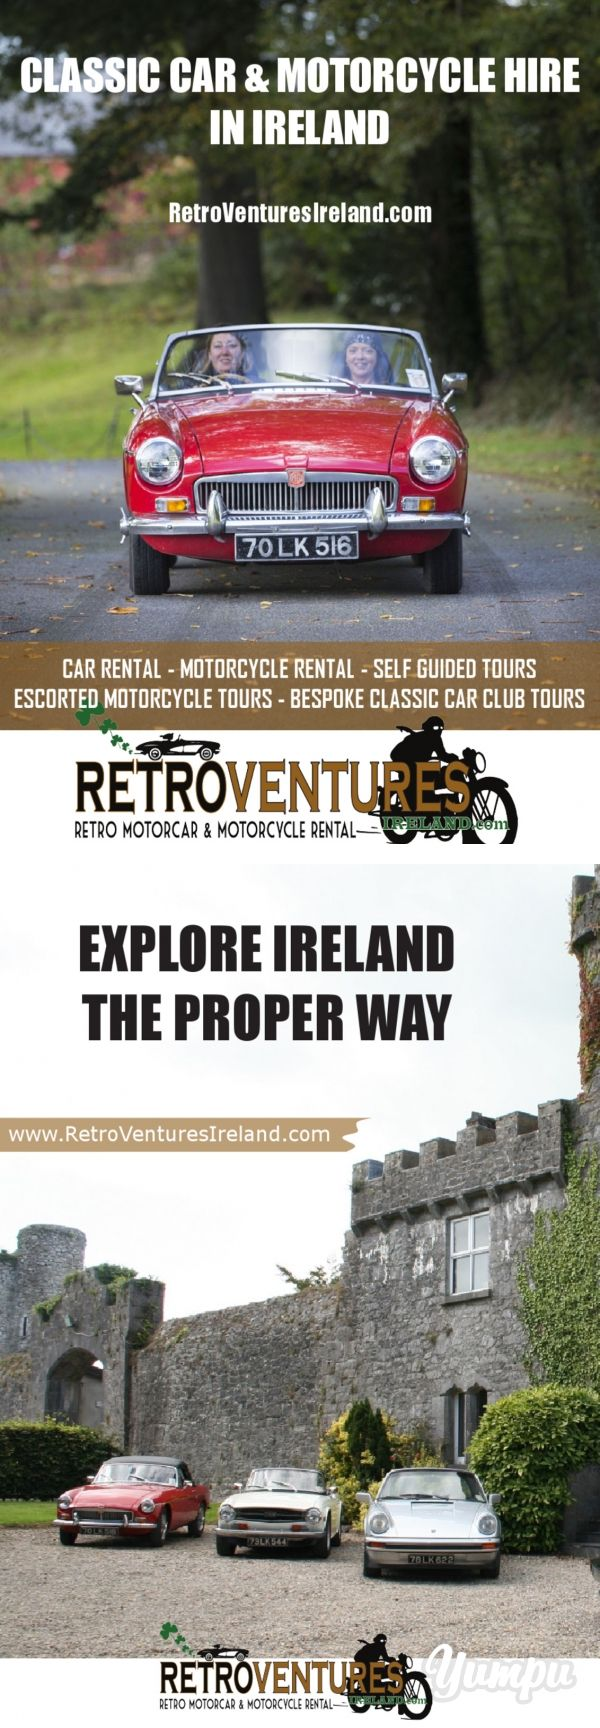 CLASSIC CAR & MOTORCYCLE HIRE IN IRELAND - Magazine with 8 pages: